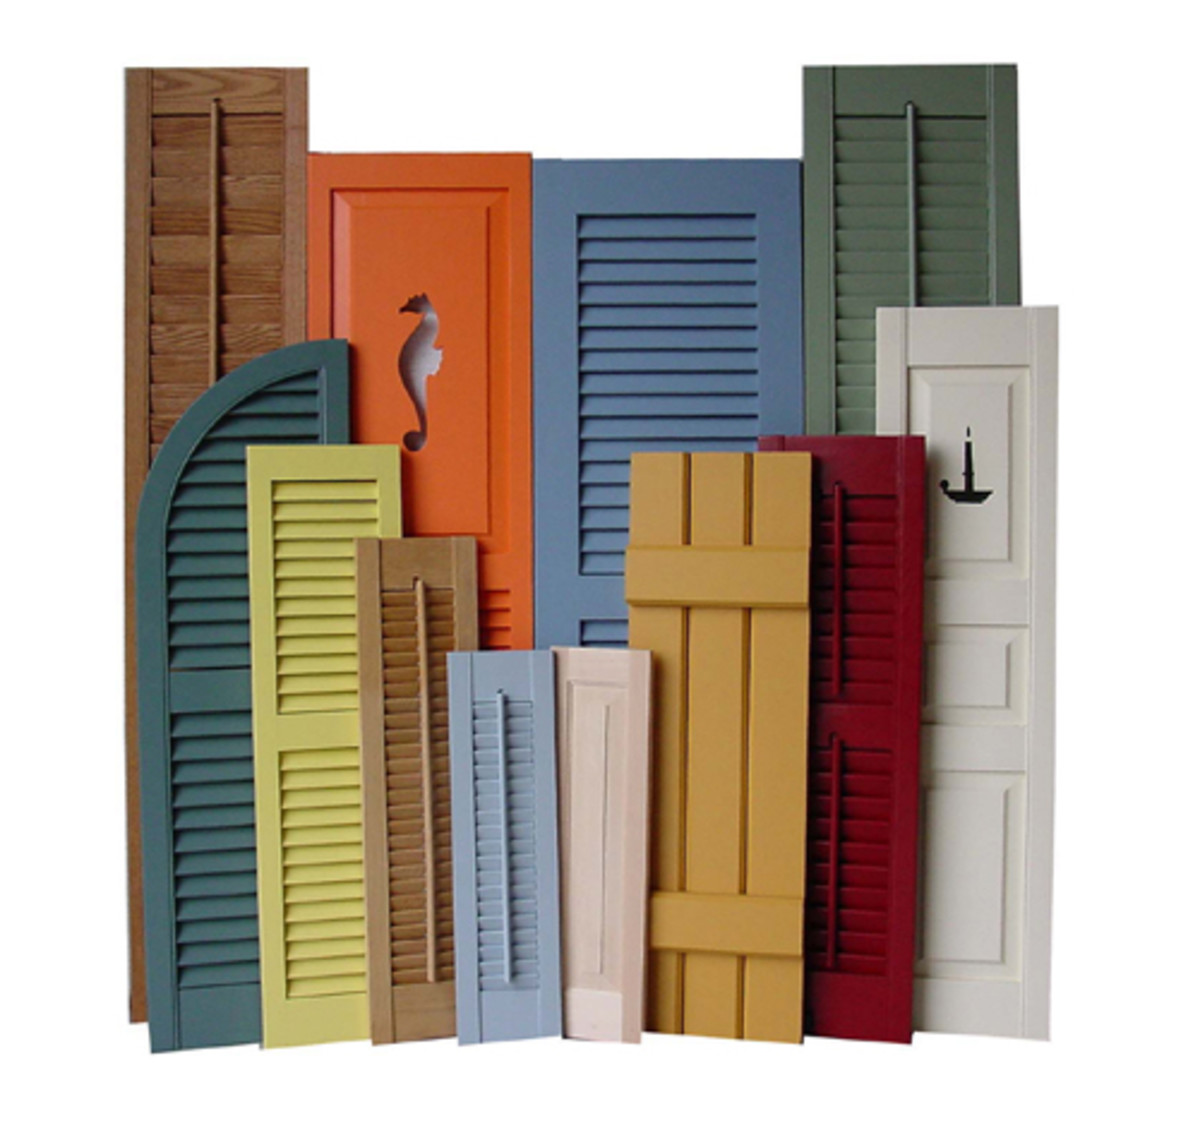 Shuttercraft makes a variety of shutter designs for 20th-century houses.